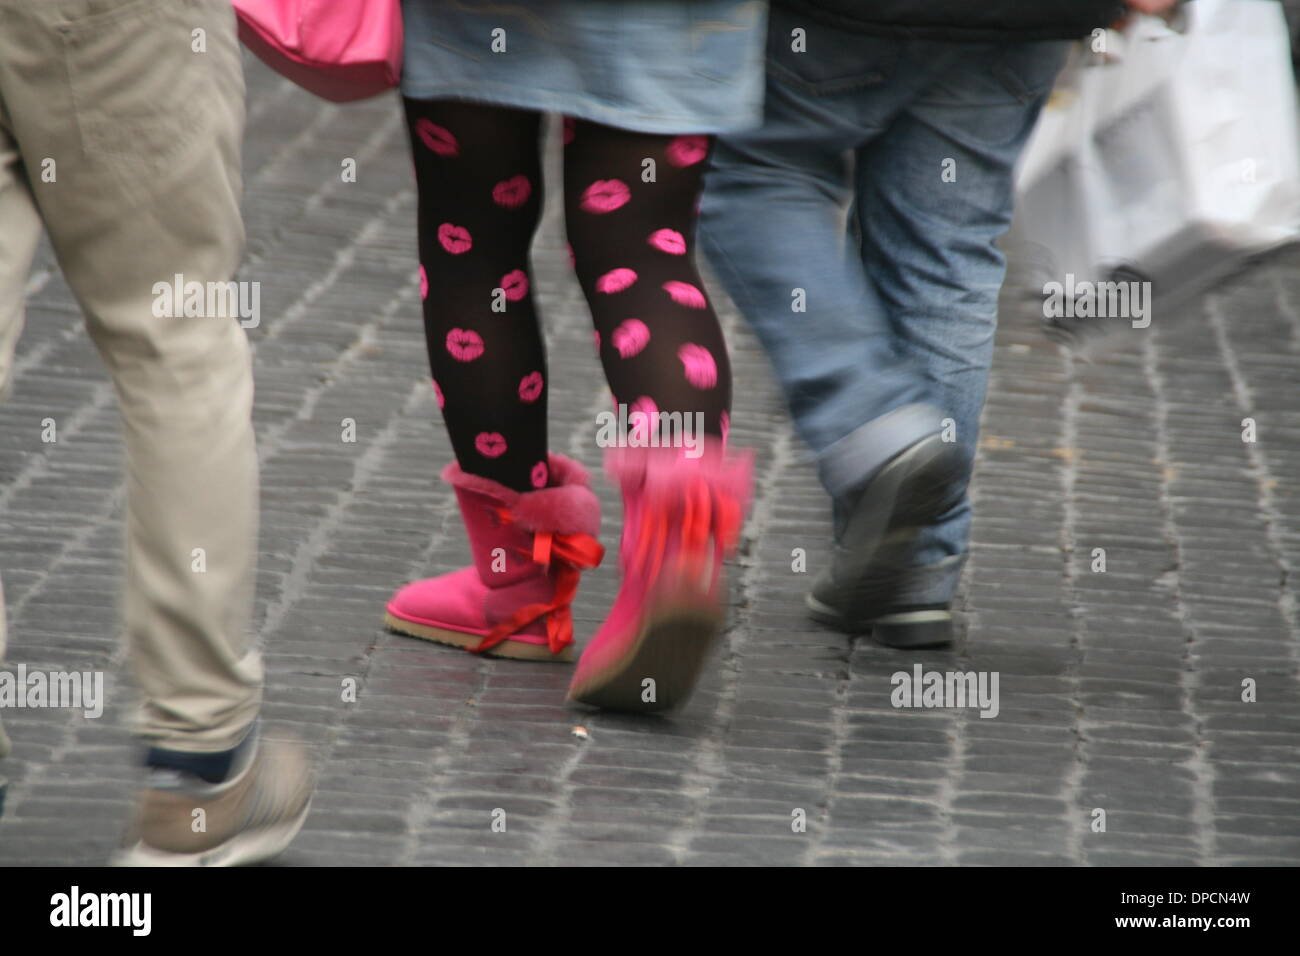 10th Jan 2014 January sales in the historic centre of Rome  Italy - Stock Image